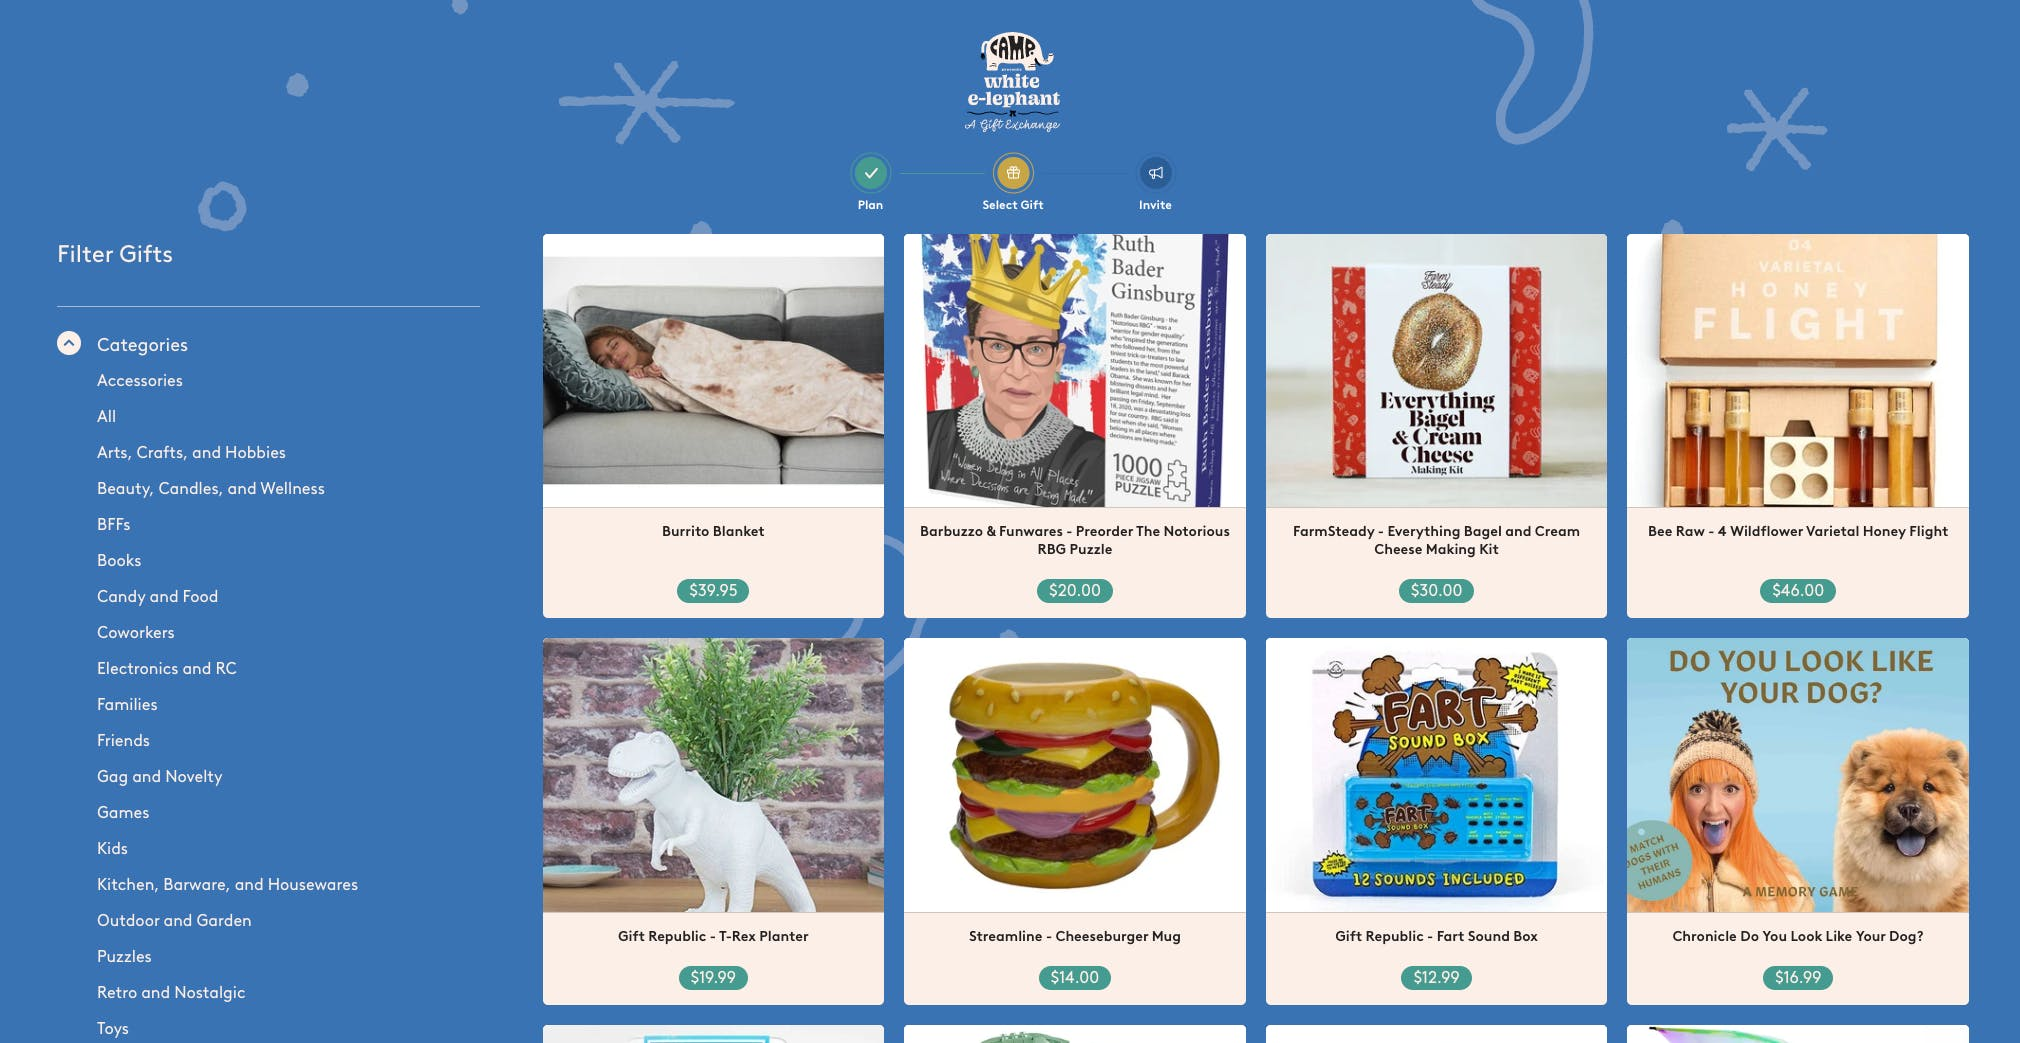 Camp White Elephant Online Gift Exchange   All the fun of a White ...